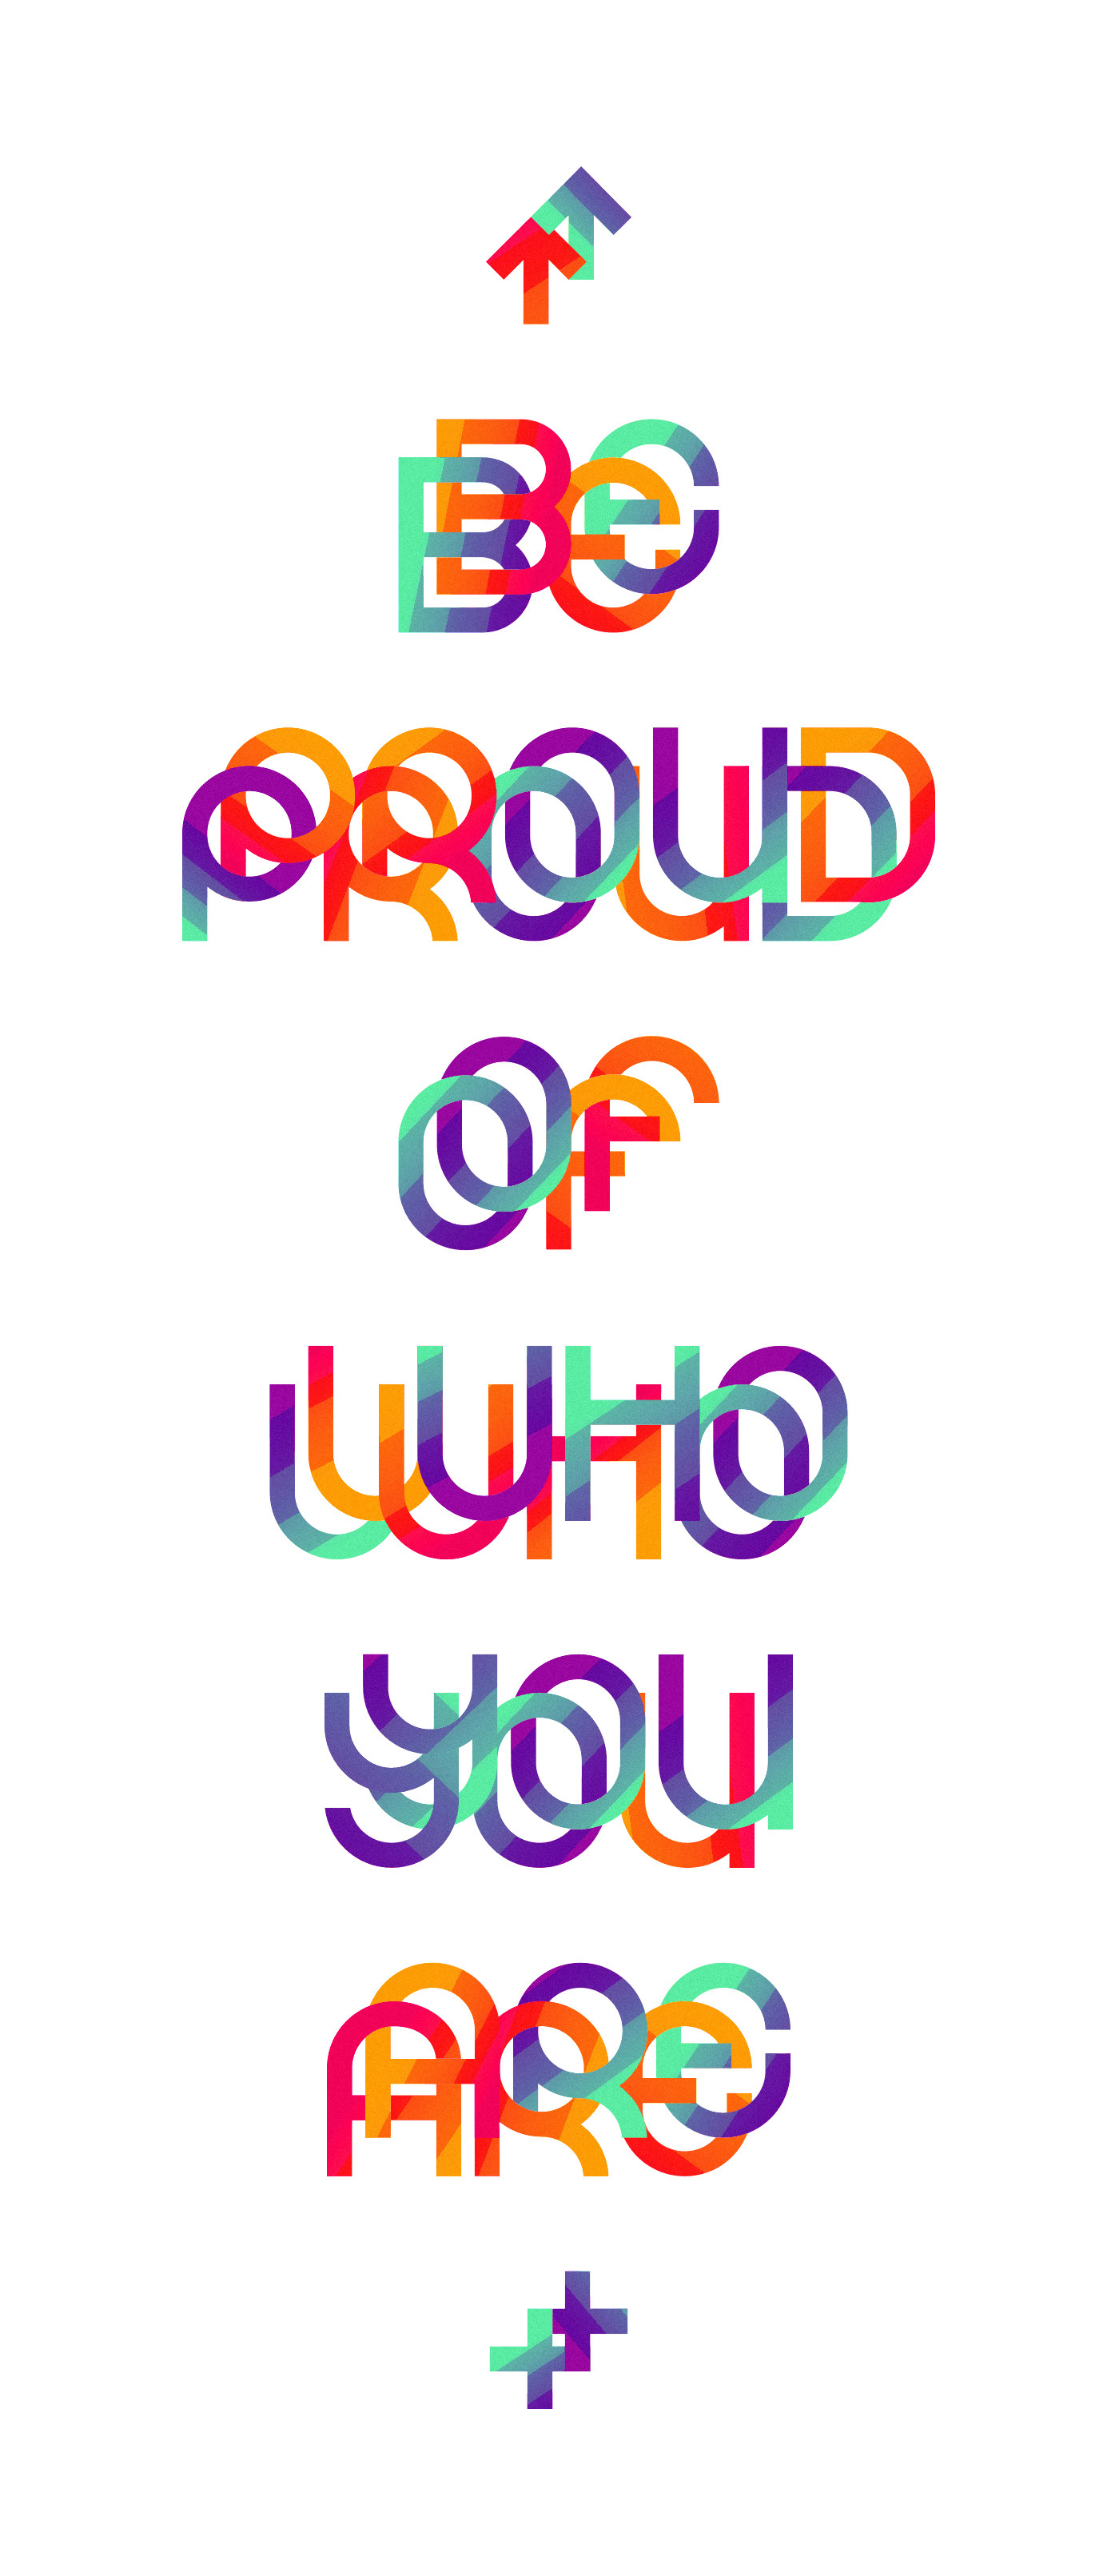 pride font type colorful yourself proud Positive dignity community movement